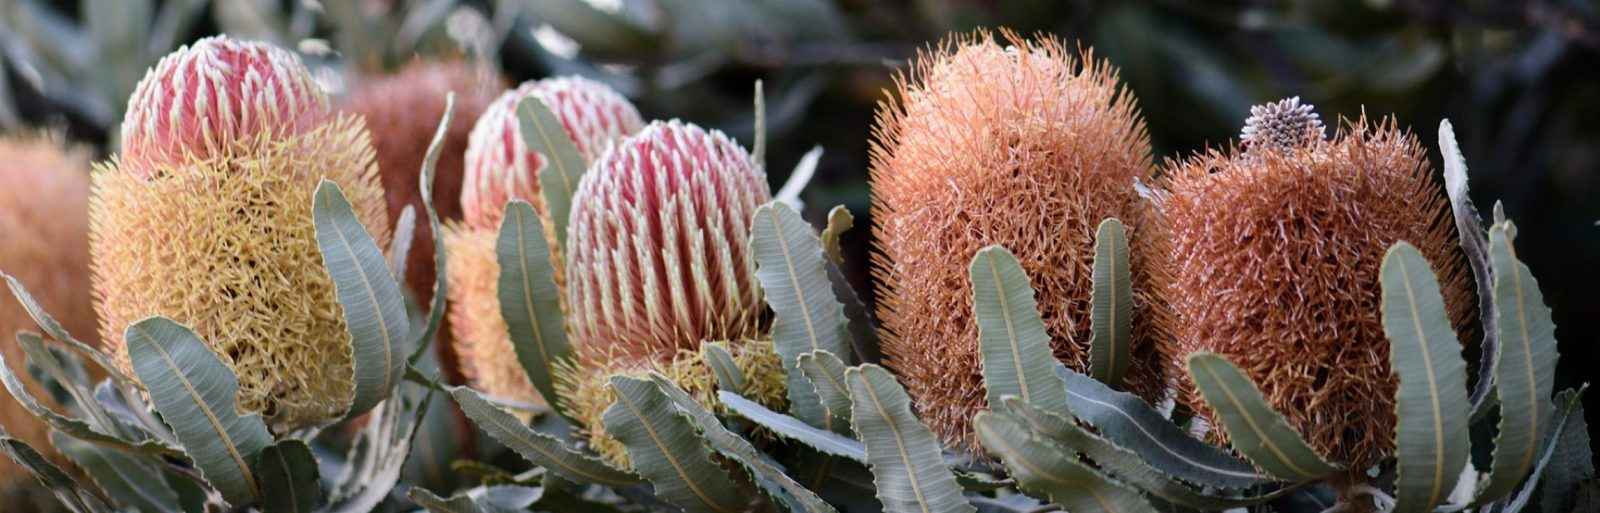 A row of banksia